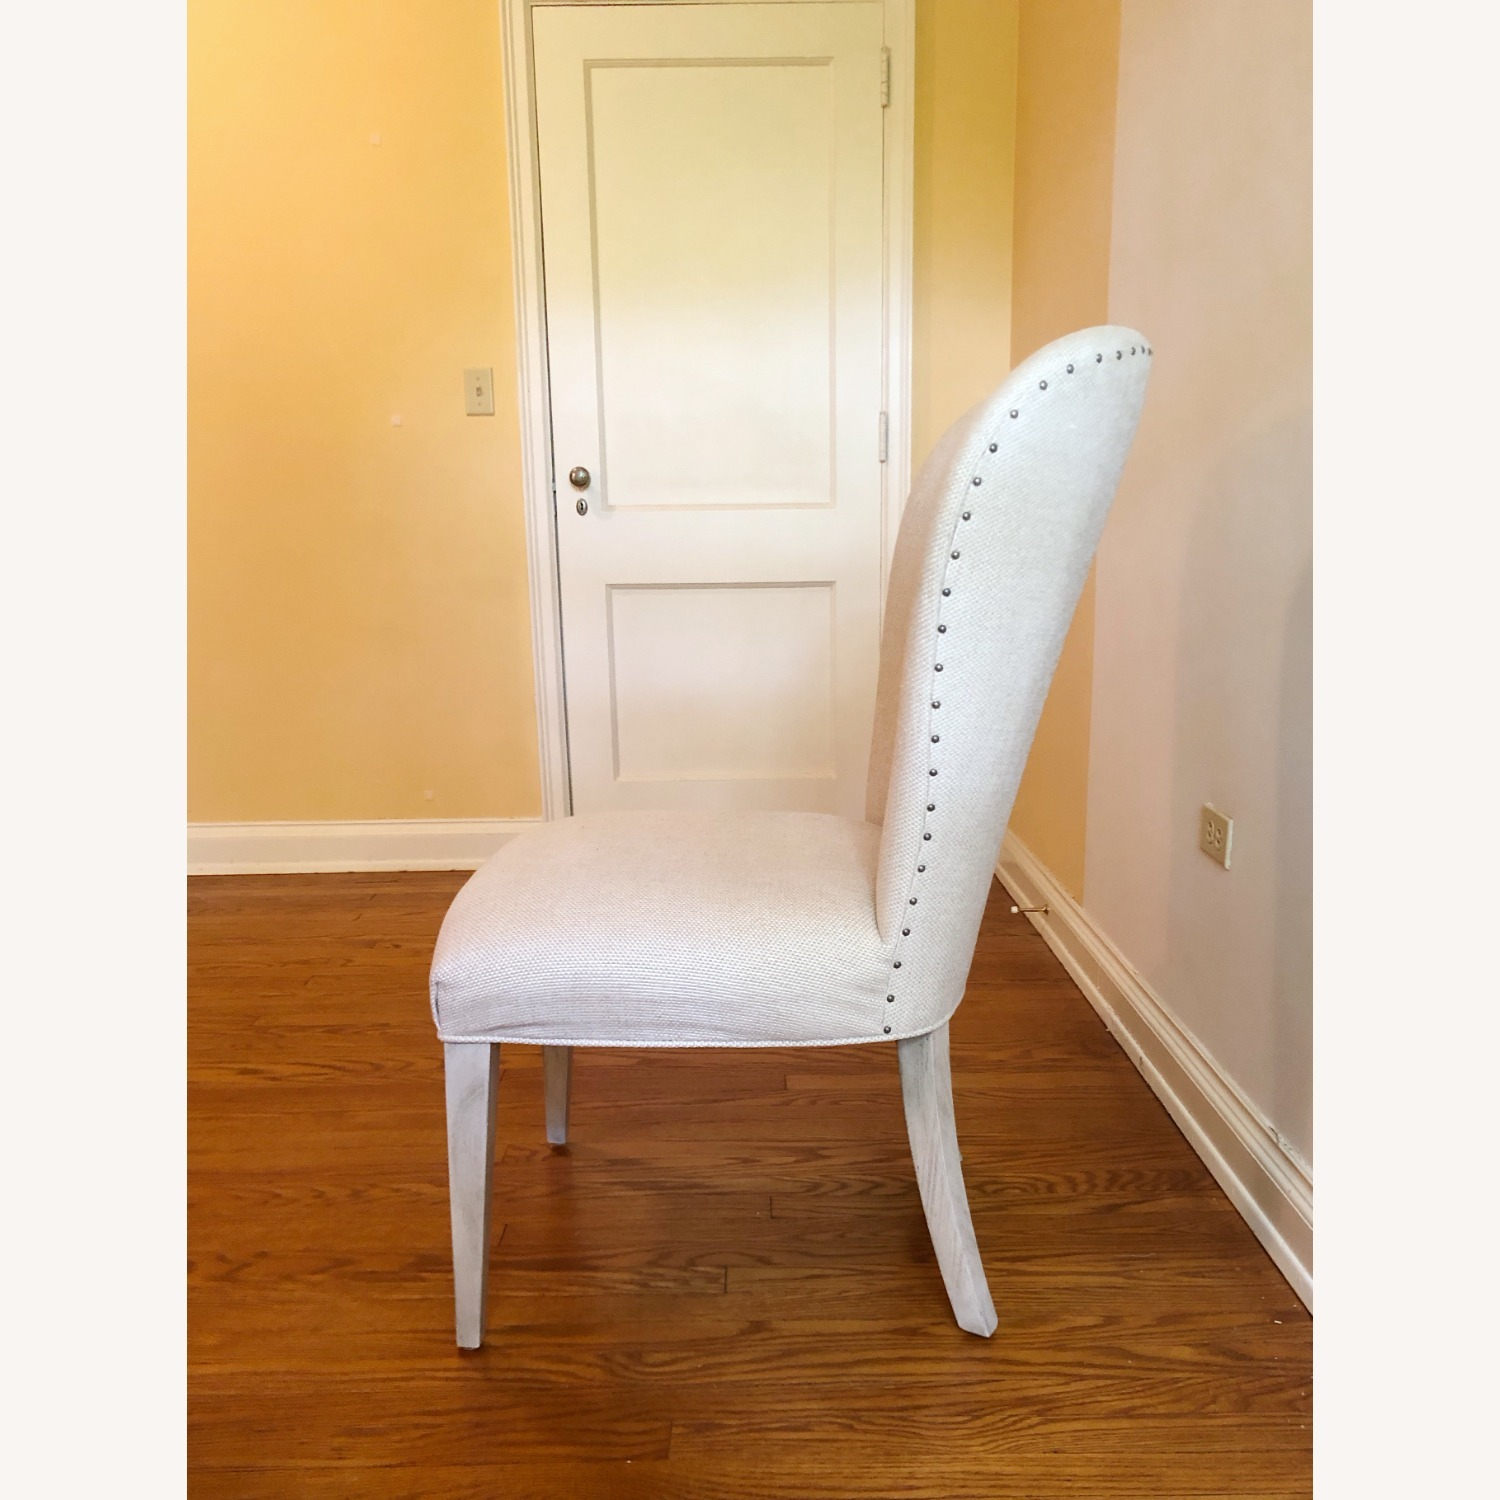 Oyster Bay Baxter Upholstered Side Chair - image-4